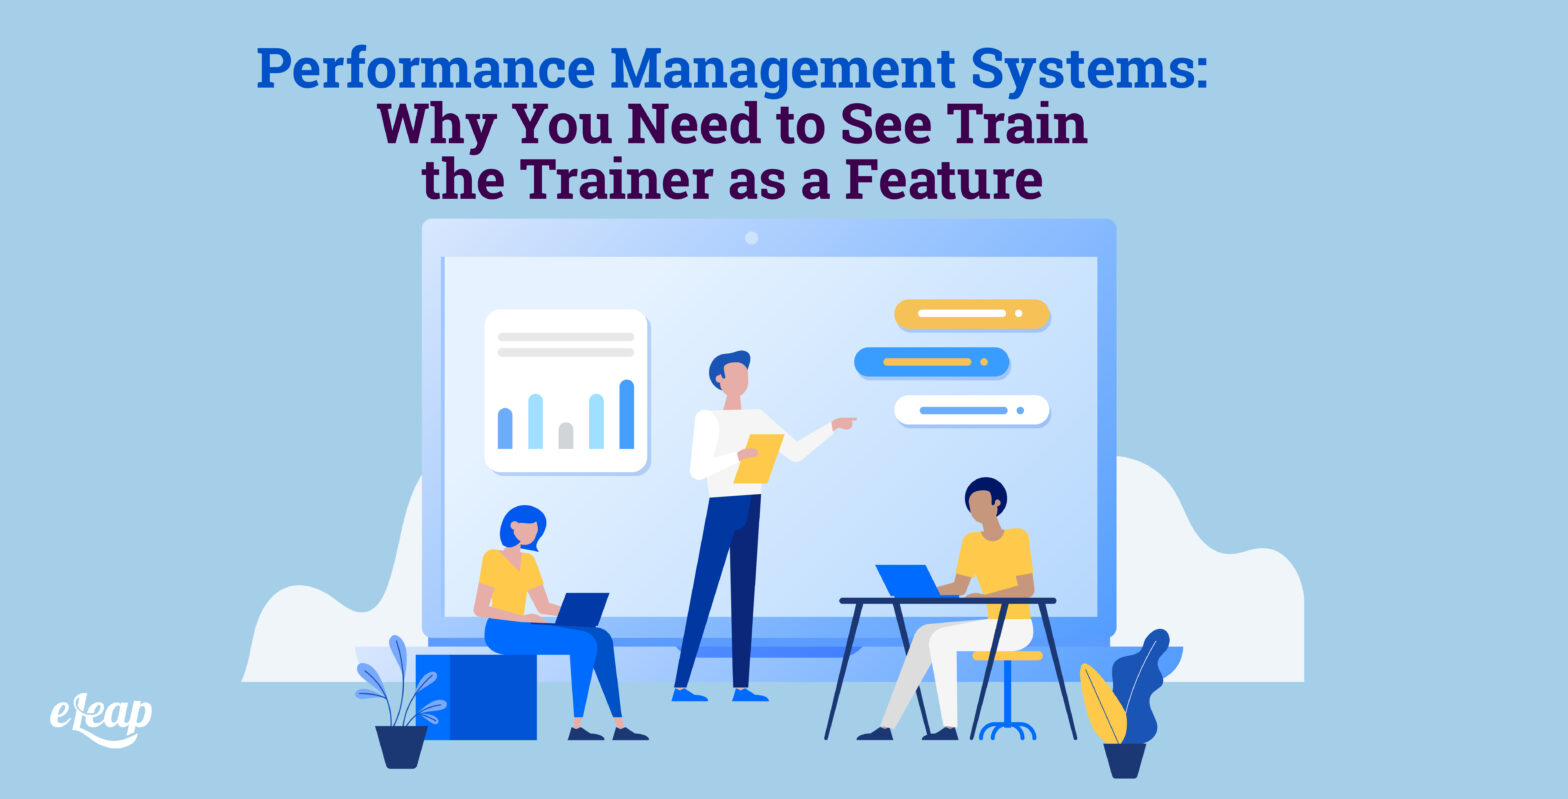 Performance Management Systems: Why You Need to See Train the Trainer as a Feature